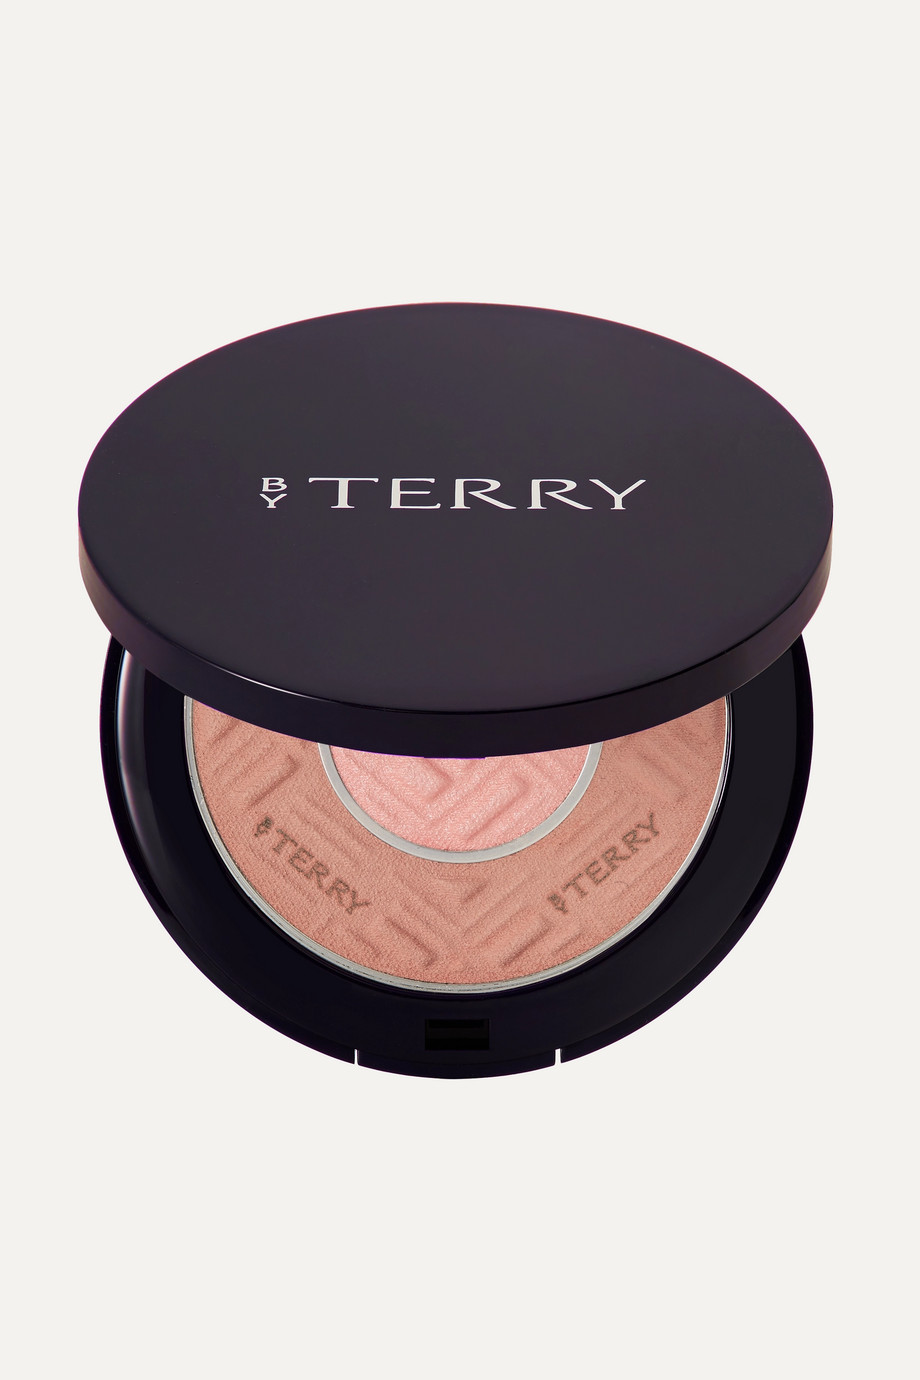 BY TERRY Compact Expert Dual Powder - Amber Light No.5